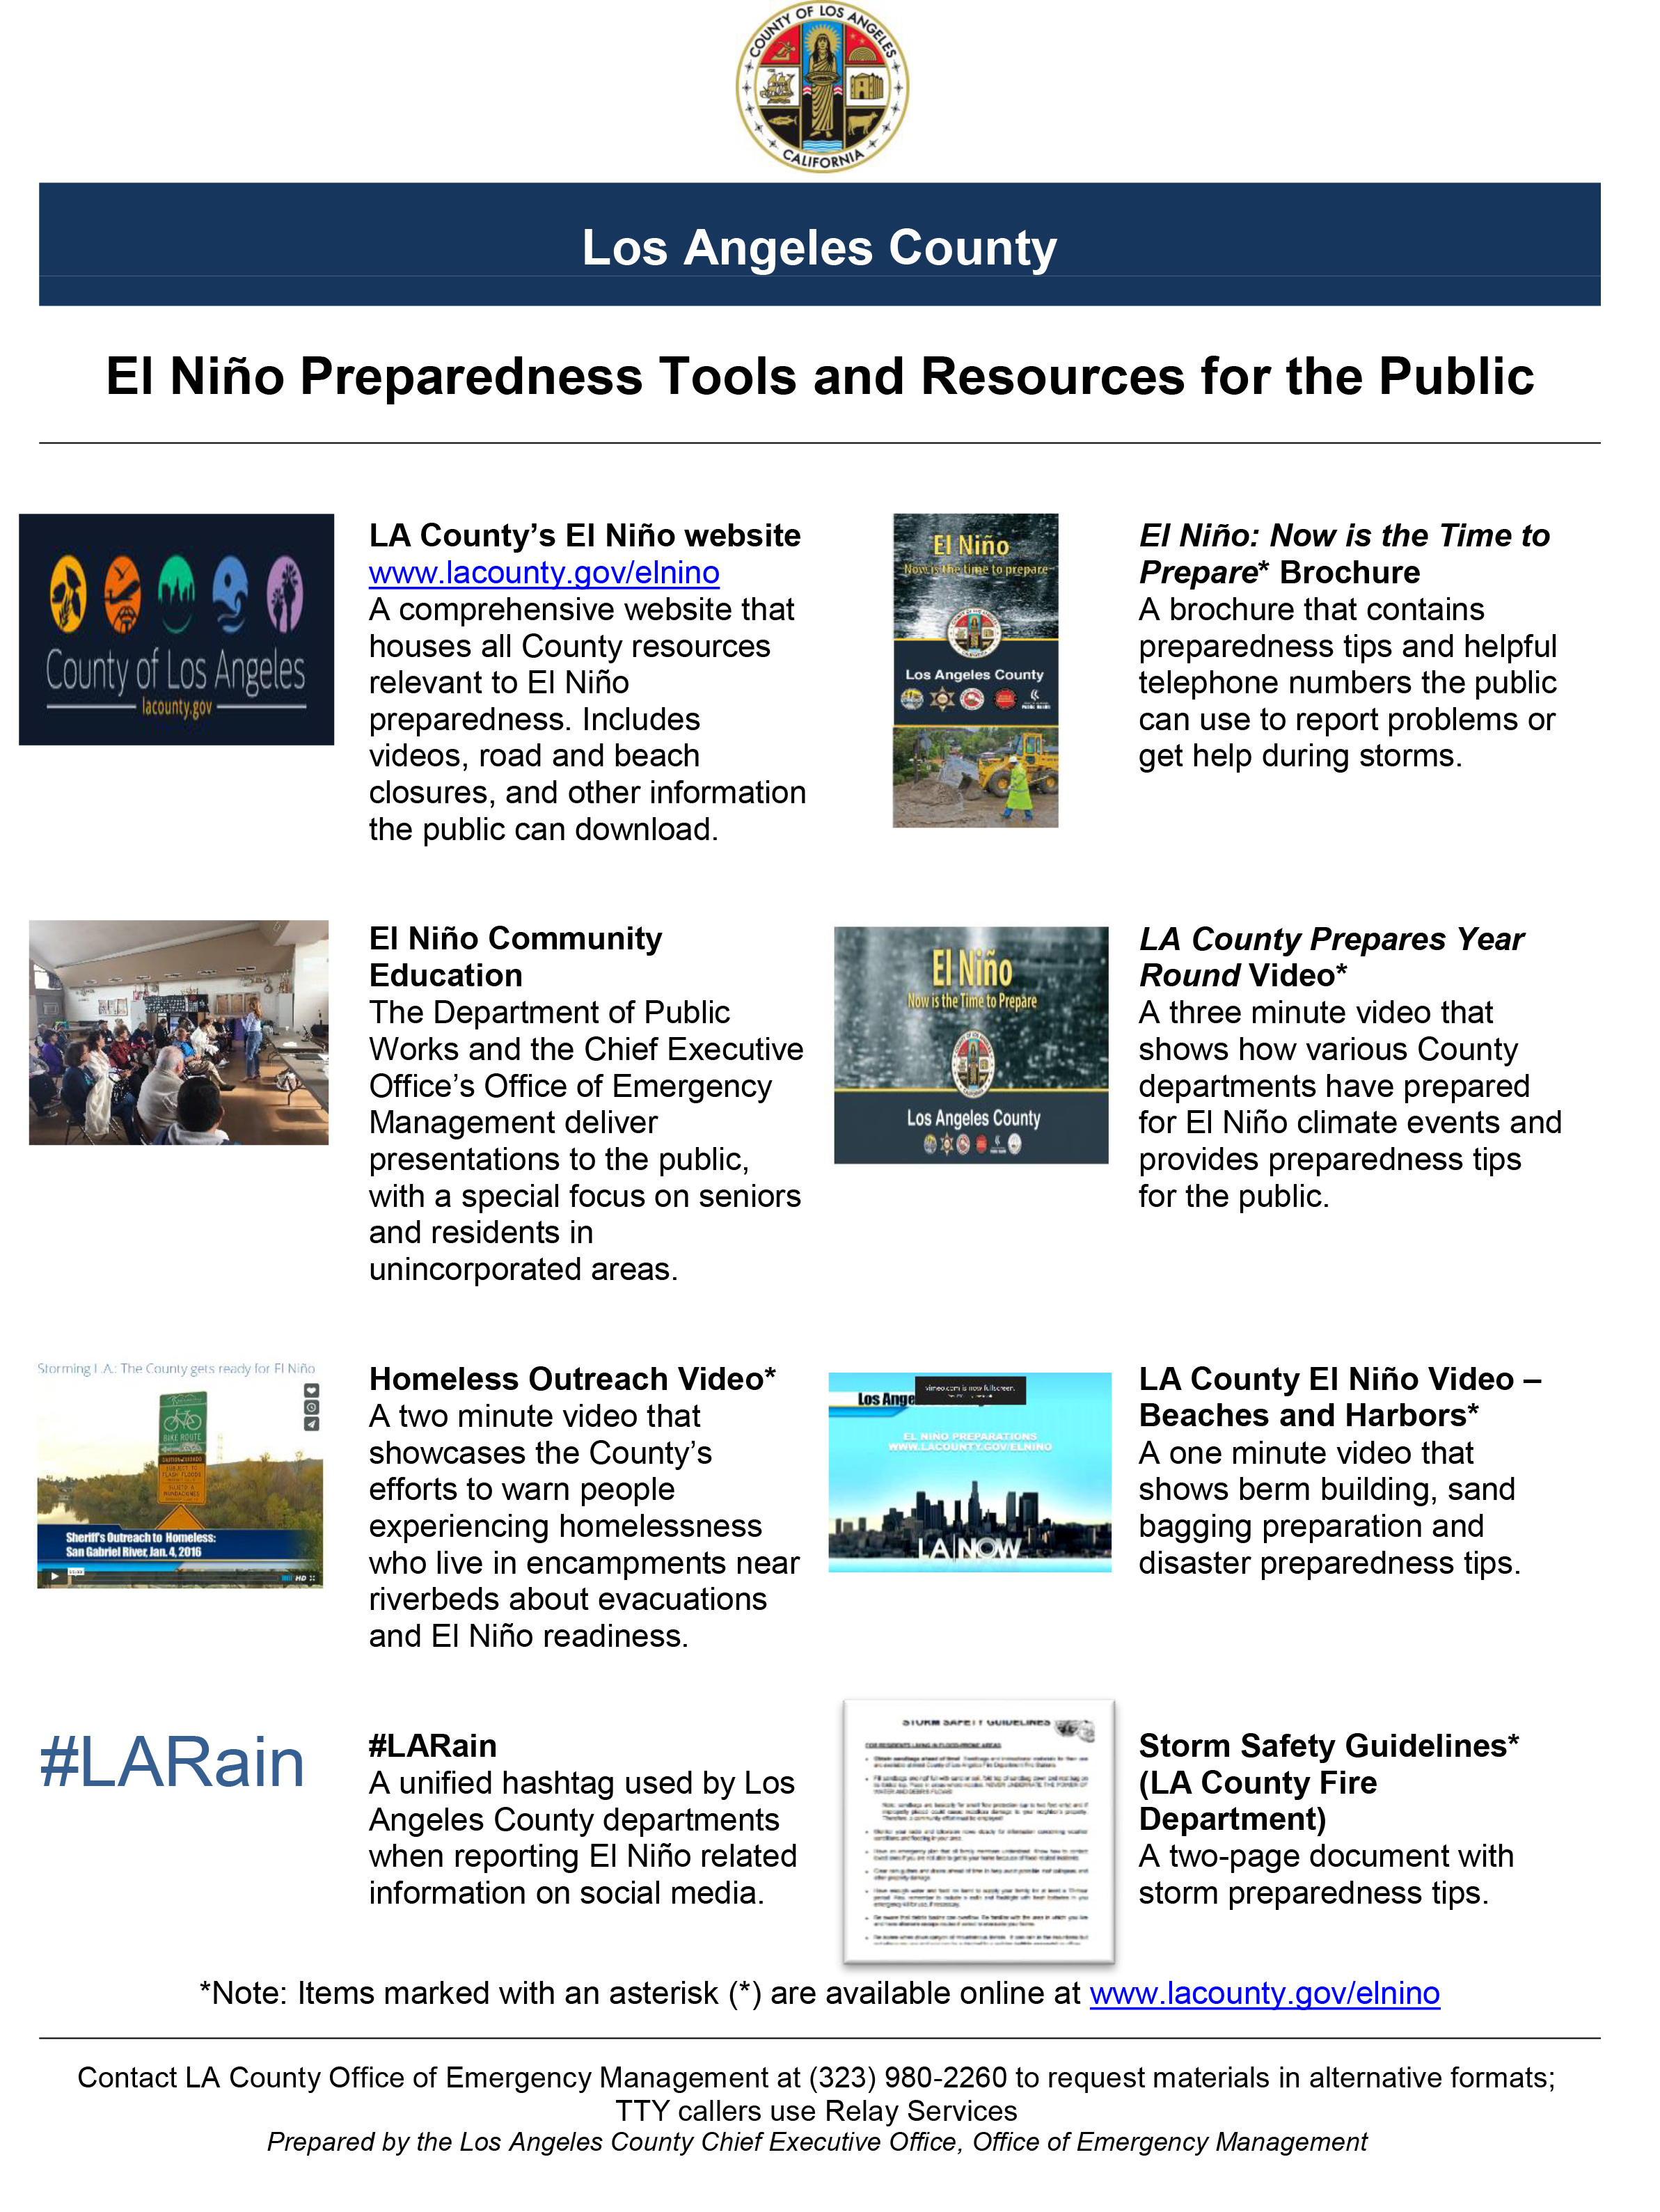 El Nino Resources